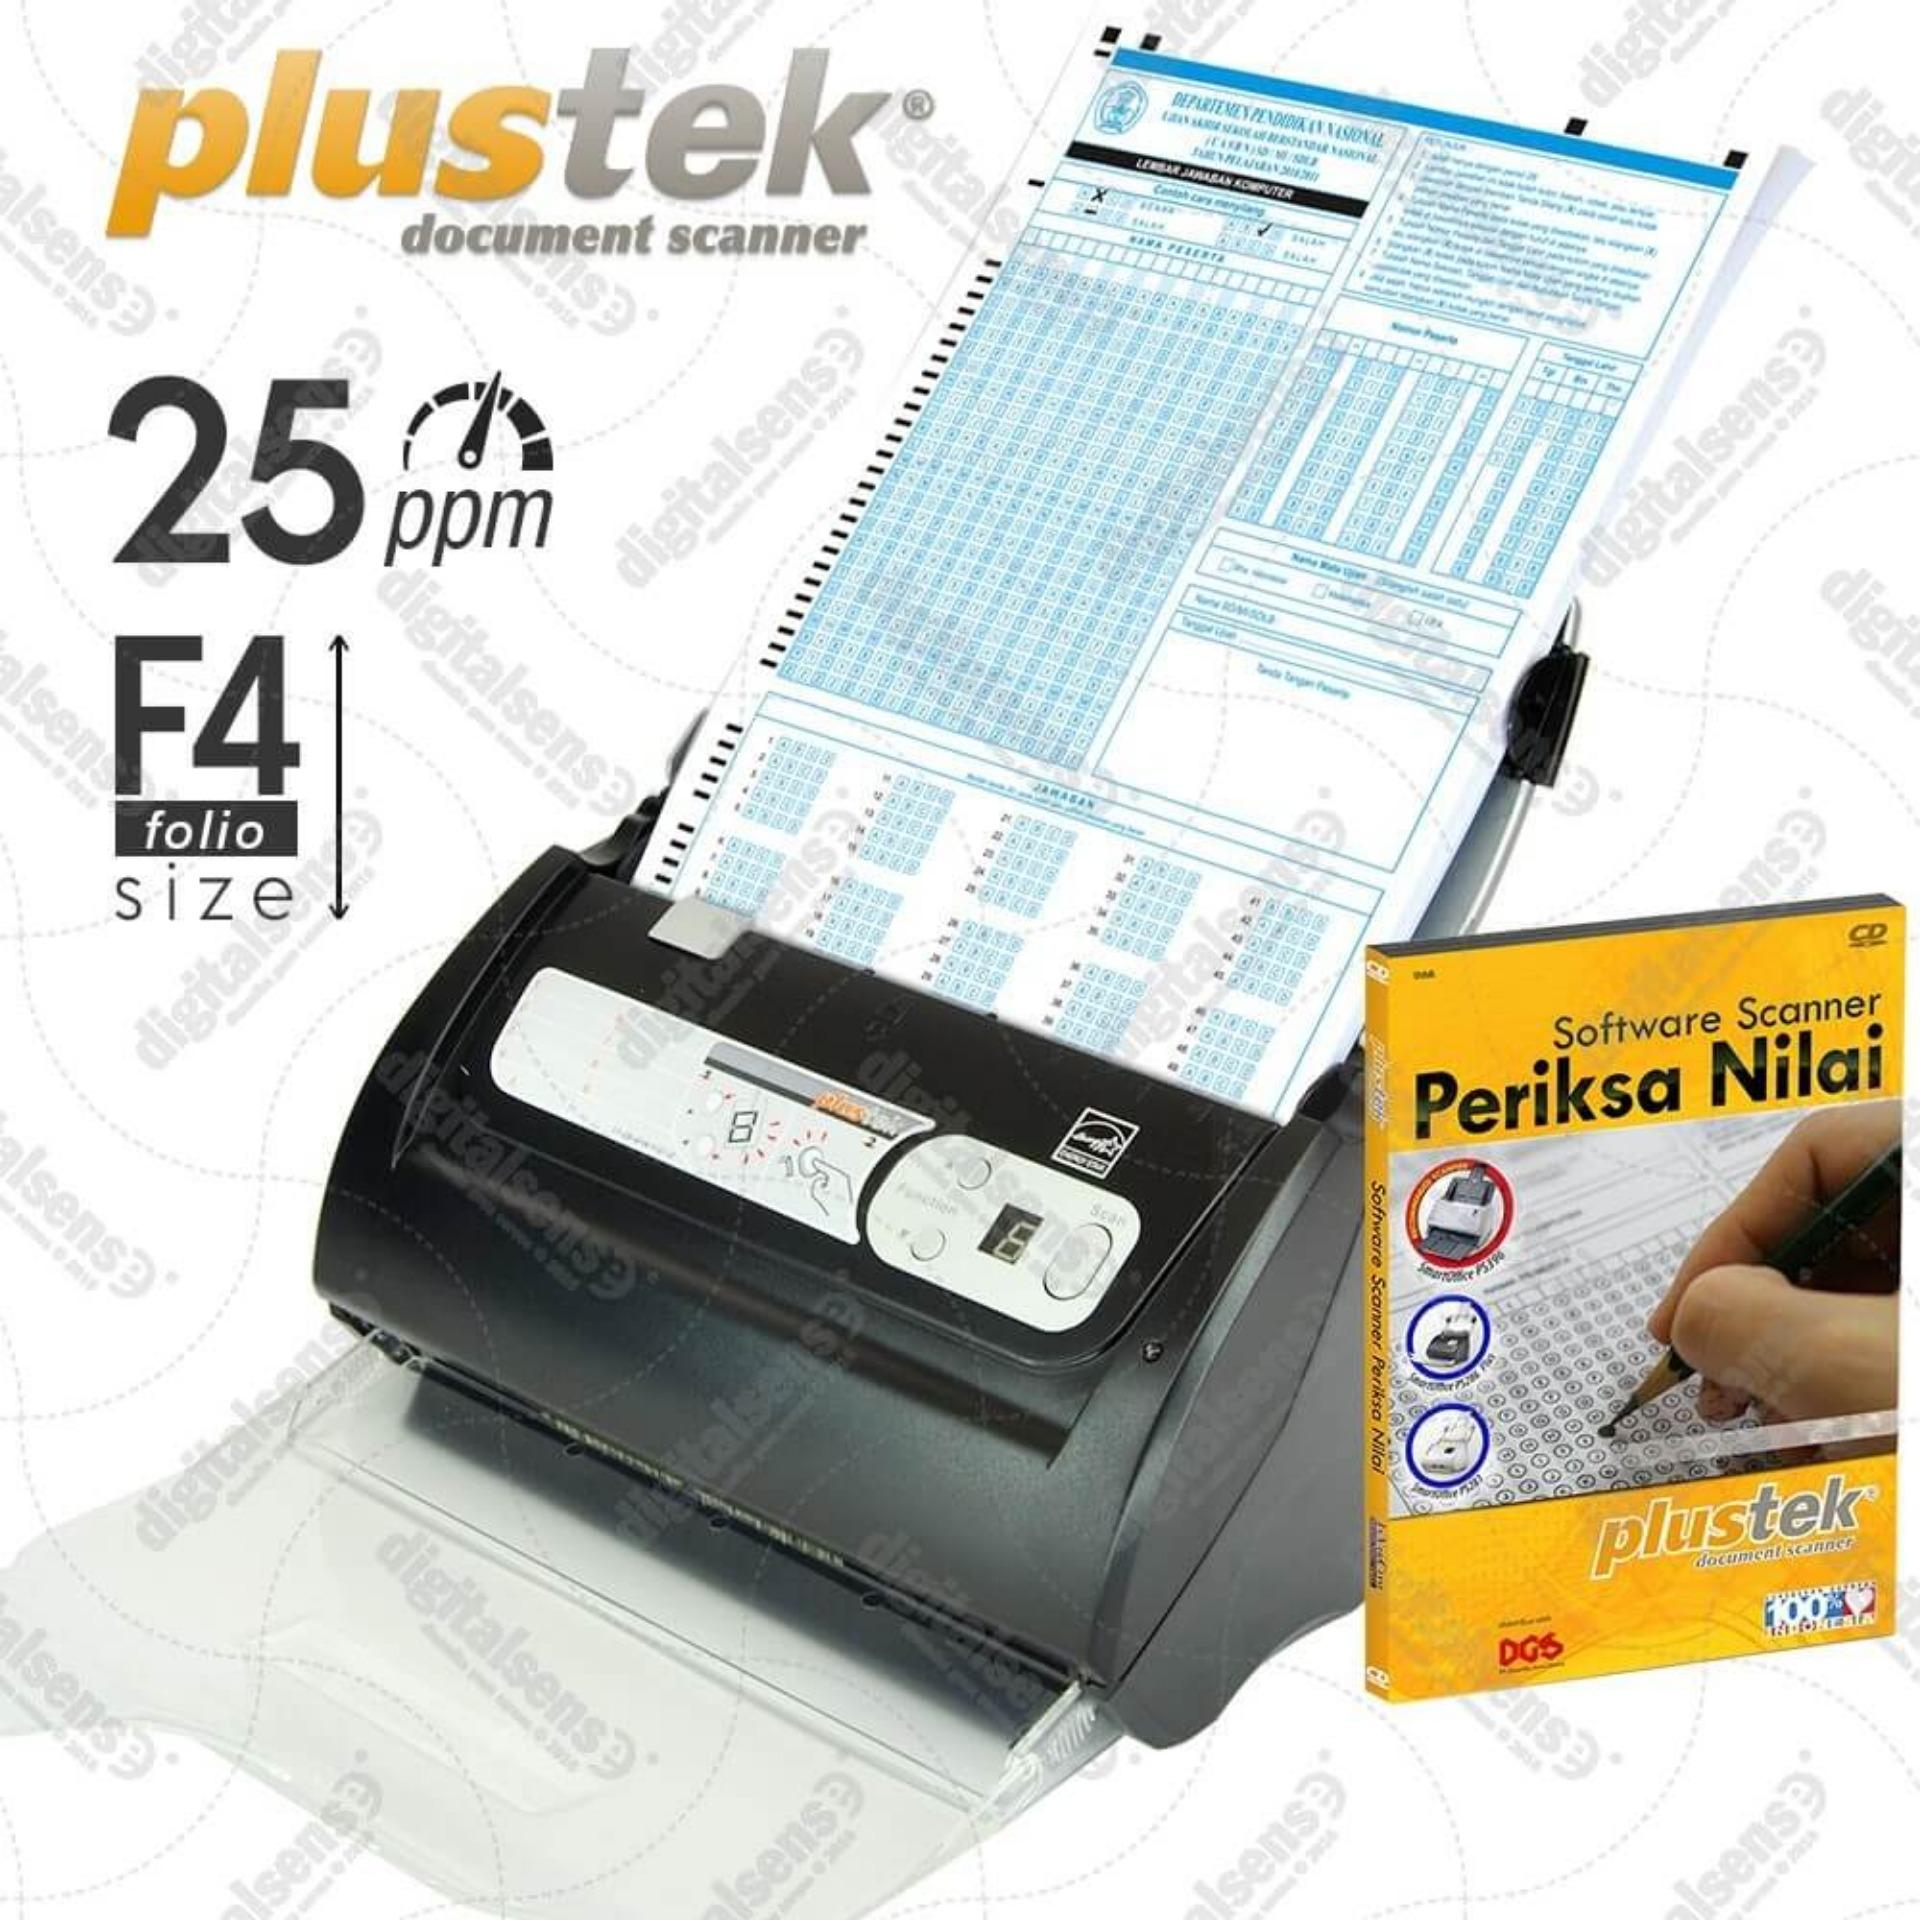 Harga Plustek Scanner Periksa Nilai Ljk 25 Lbr Mnt Ps286 Plus With Software Asli Plustek